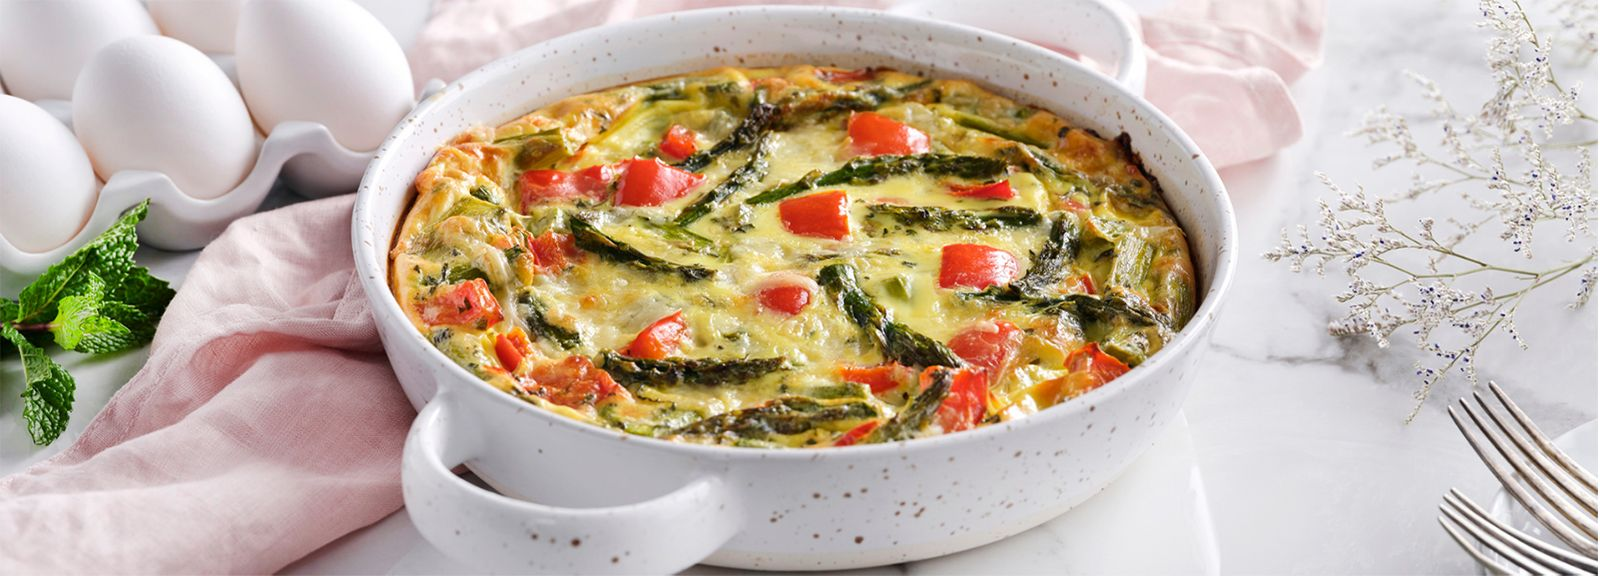 Roasted Asparagus and Pepper Crustless Quiche